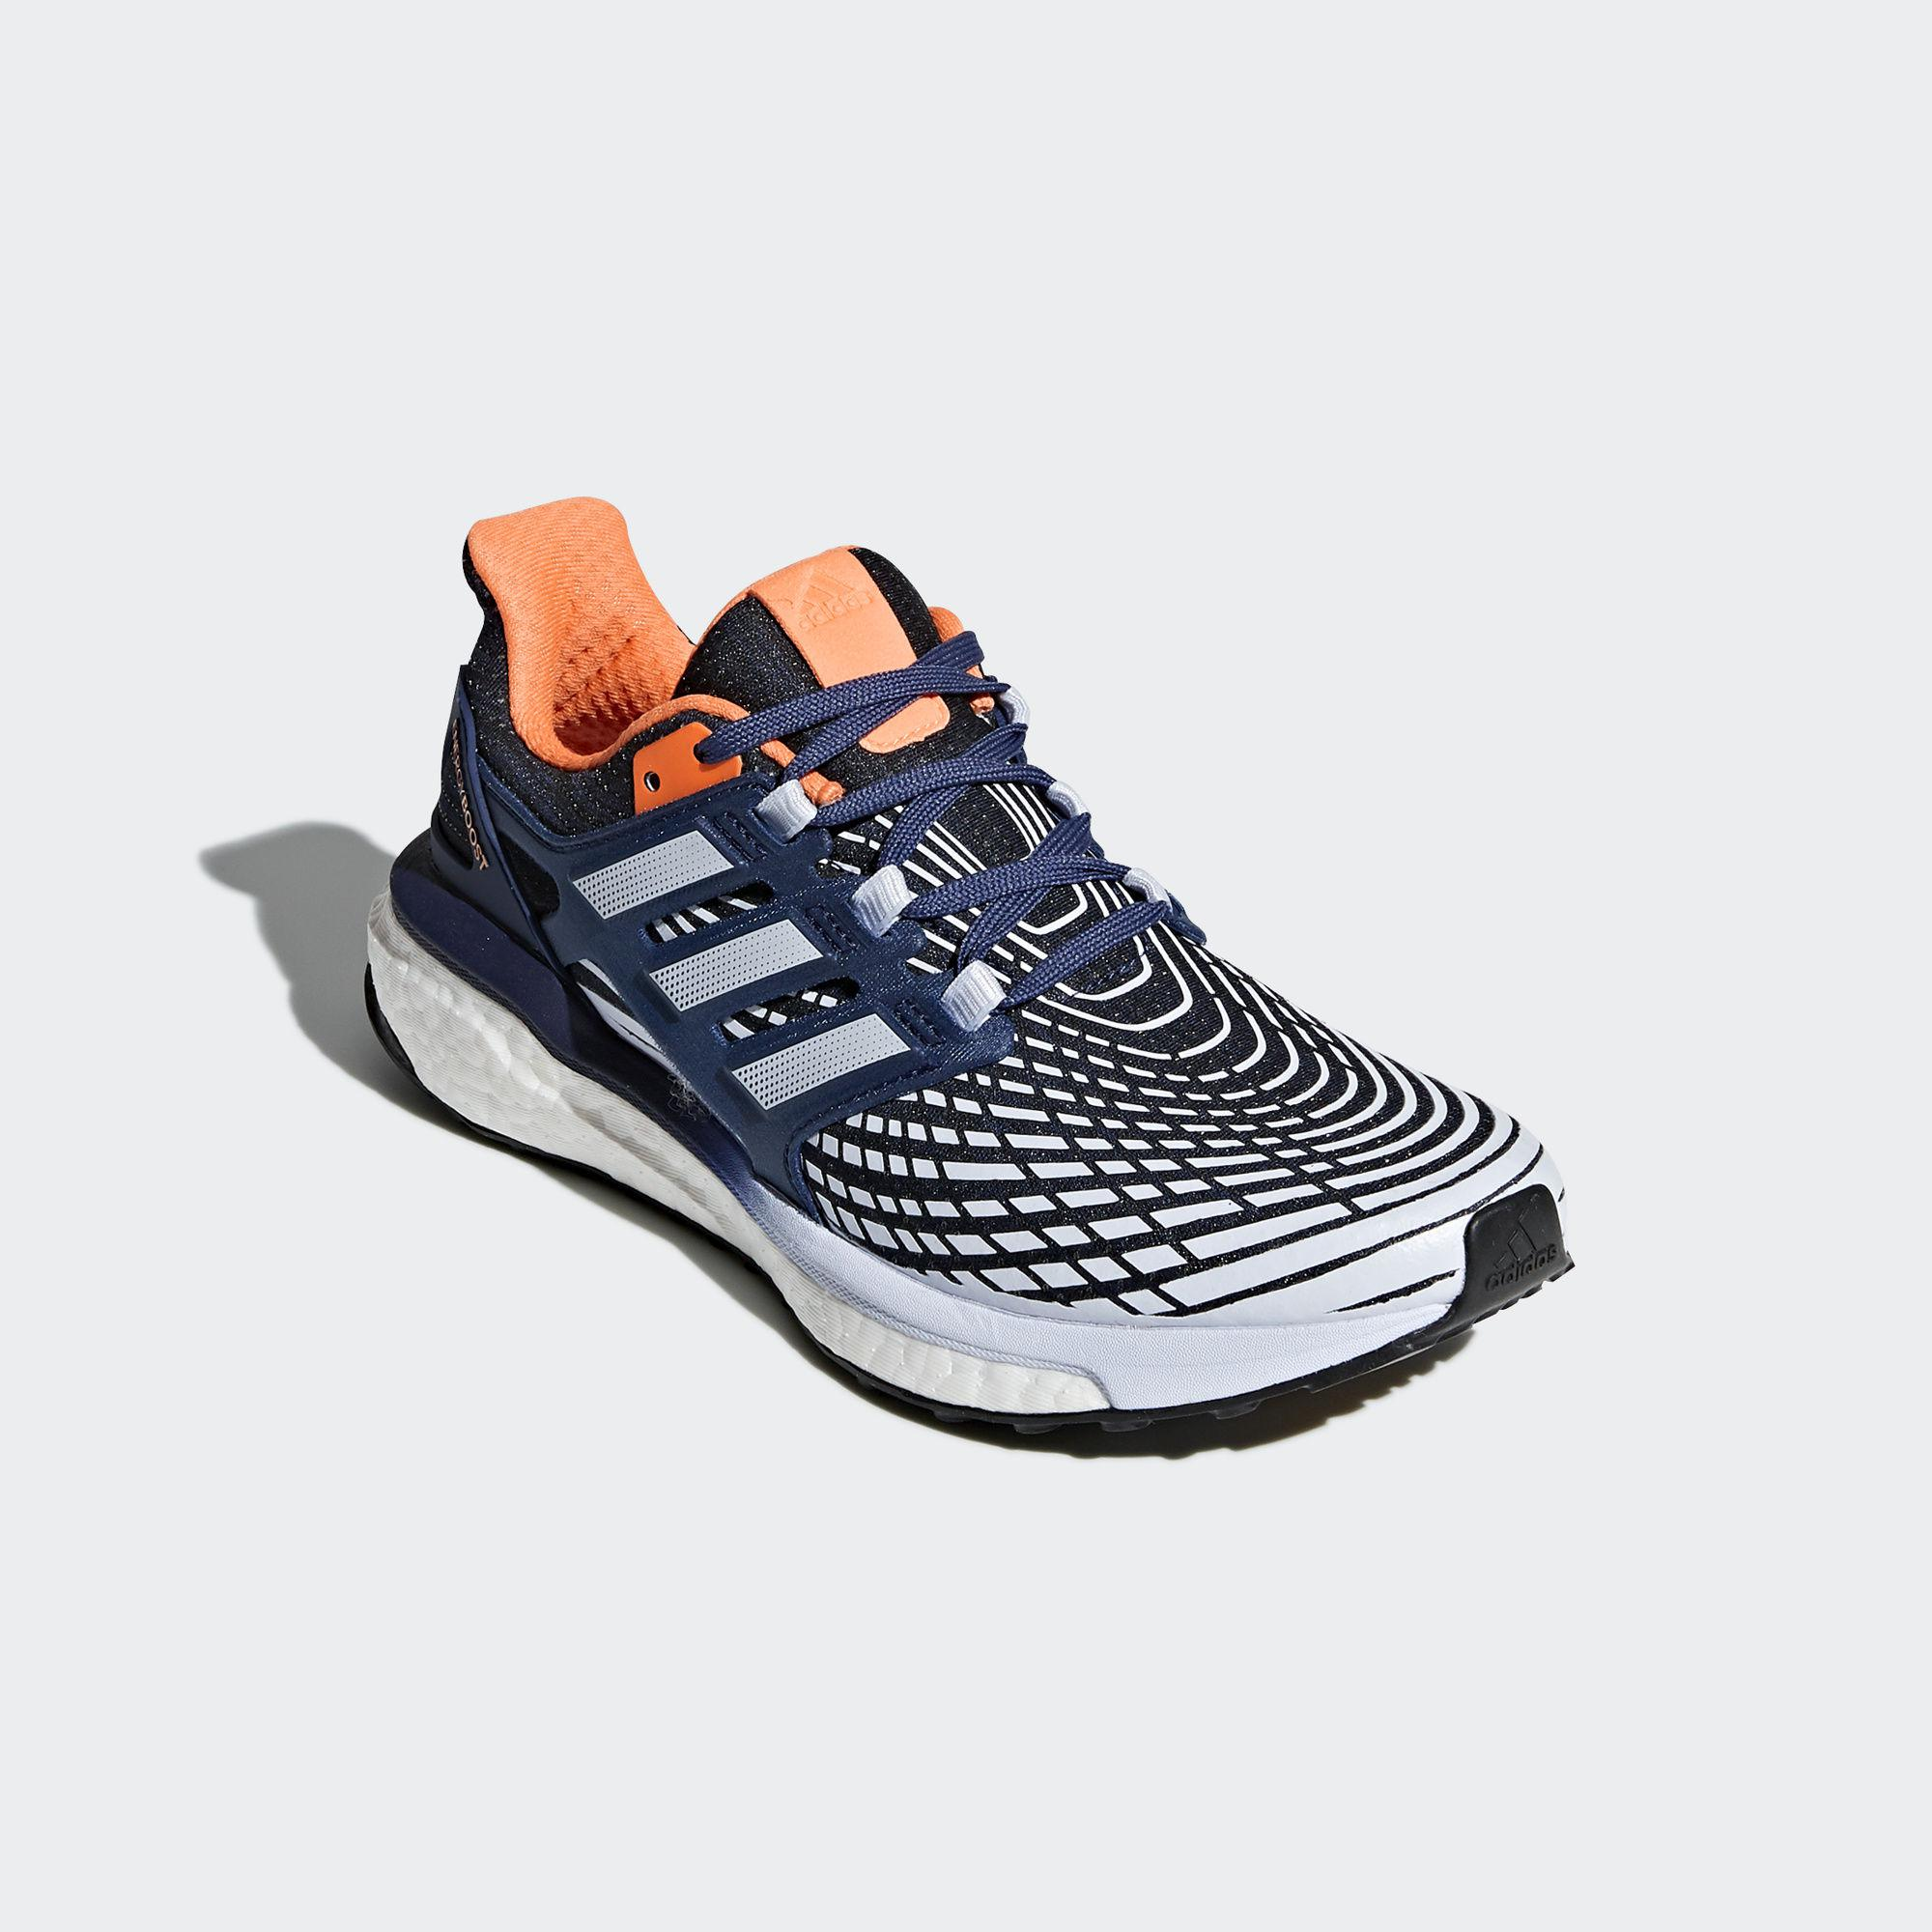 13bcd9e25 Adidas Womens Energy Boost Running Shoes - Blue Orange - Tennisnuts.com